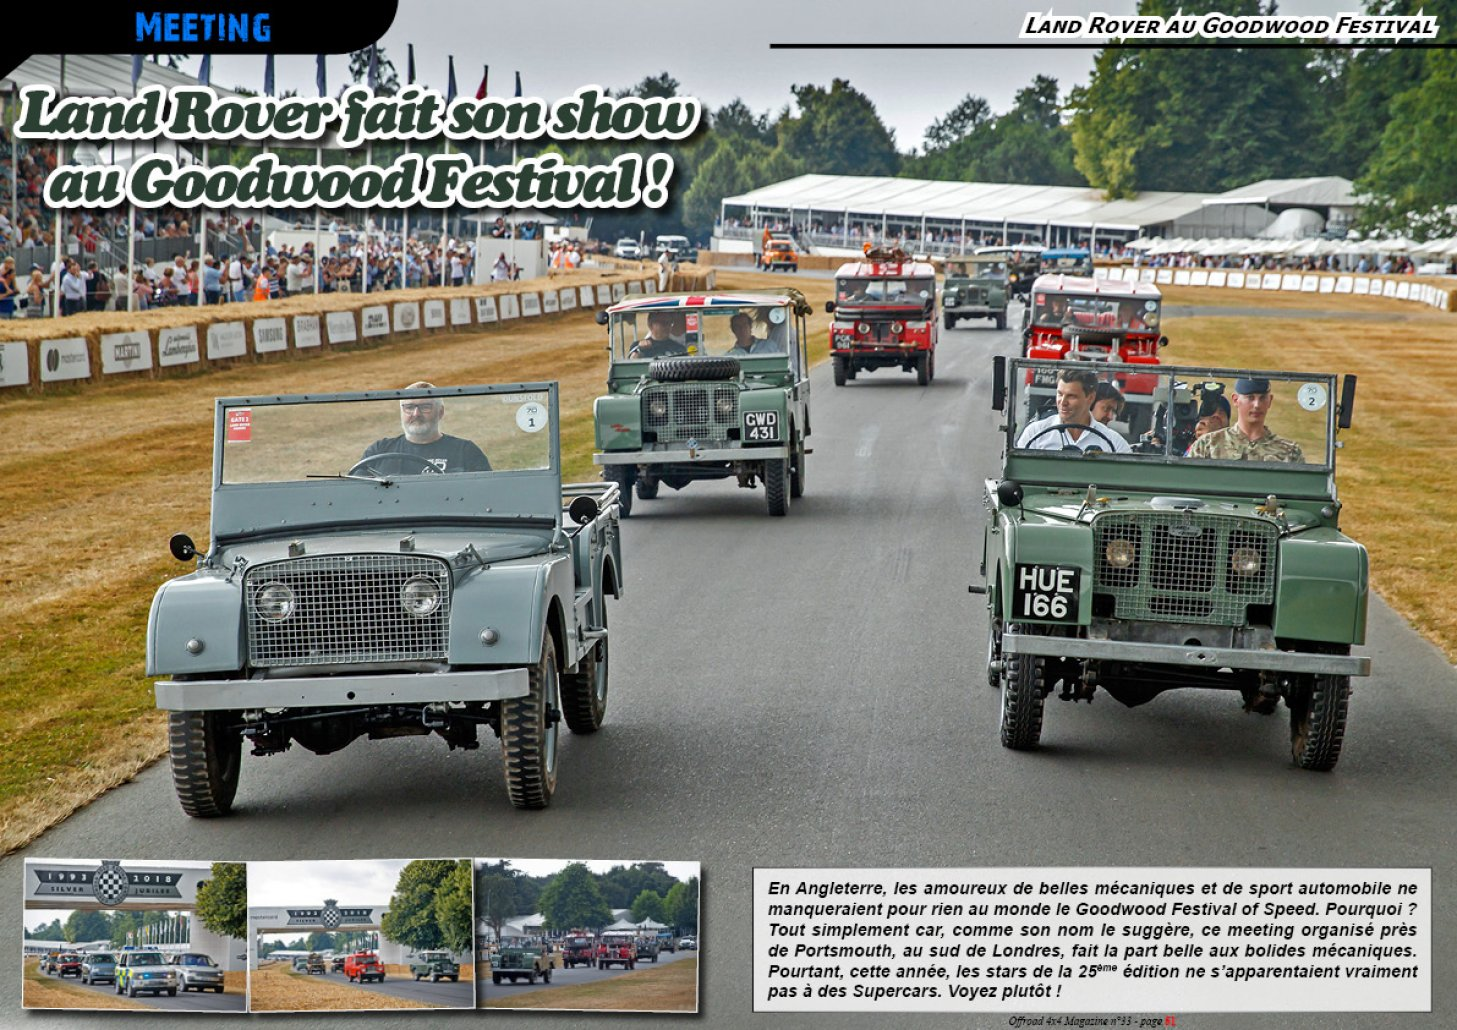 La Parade LR au Goodwood Festival